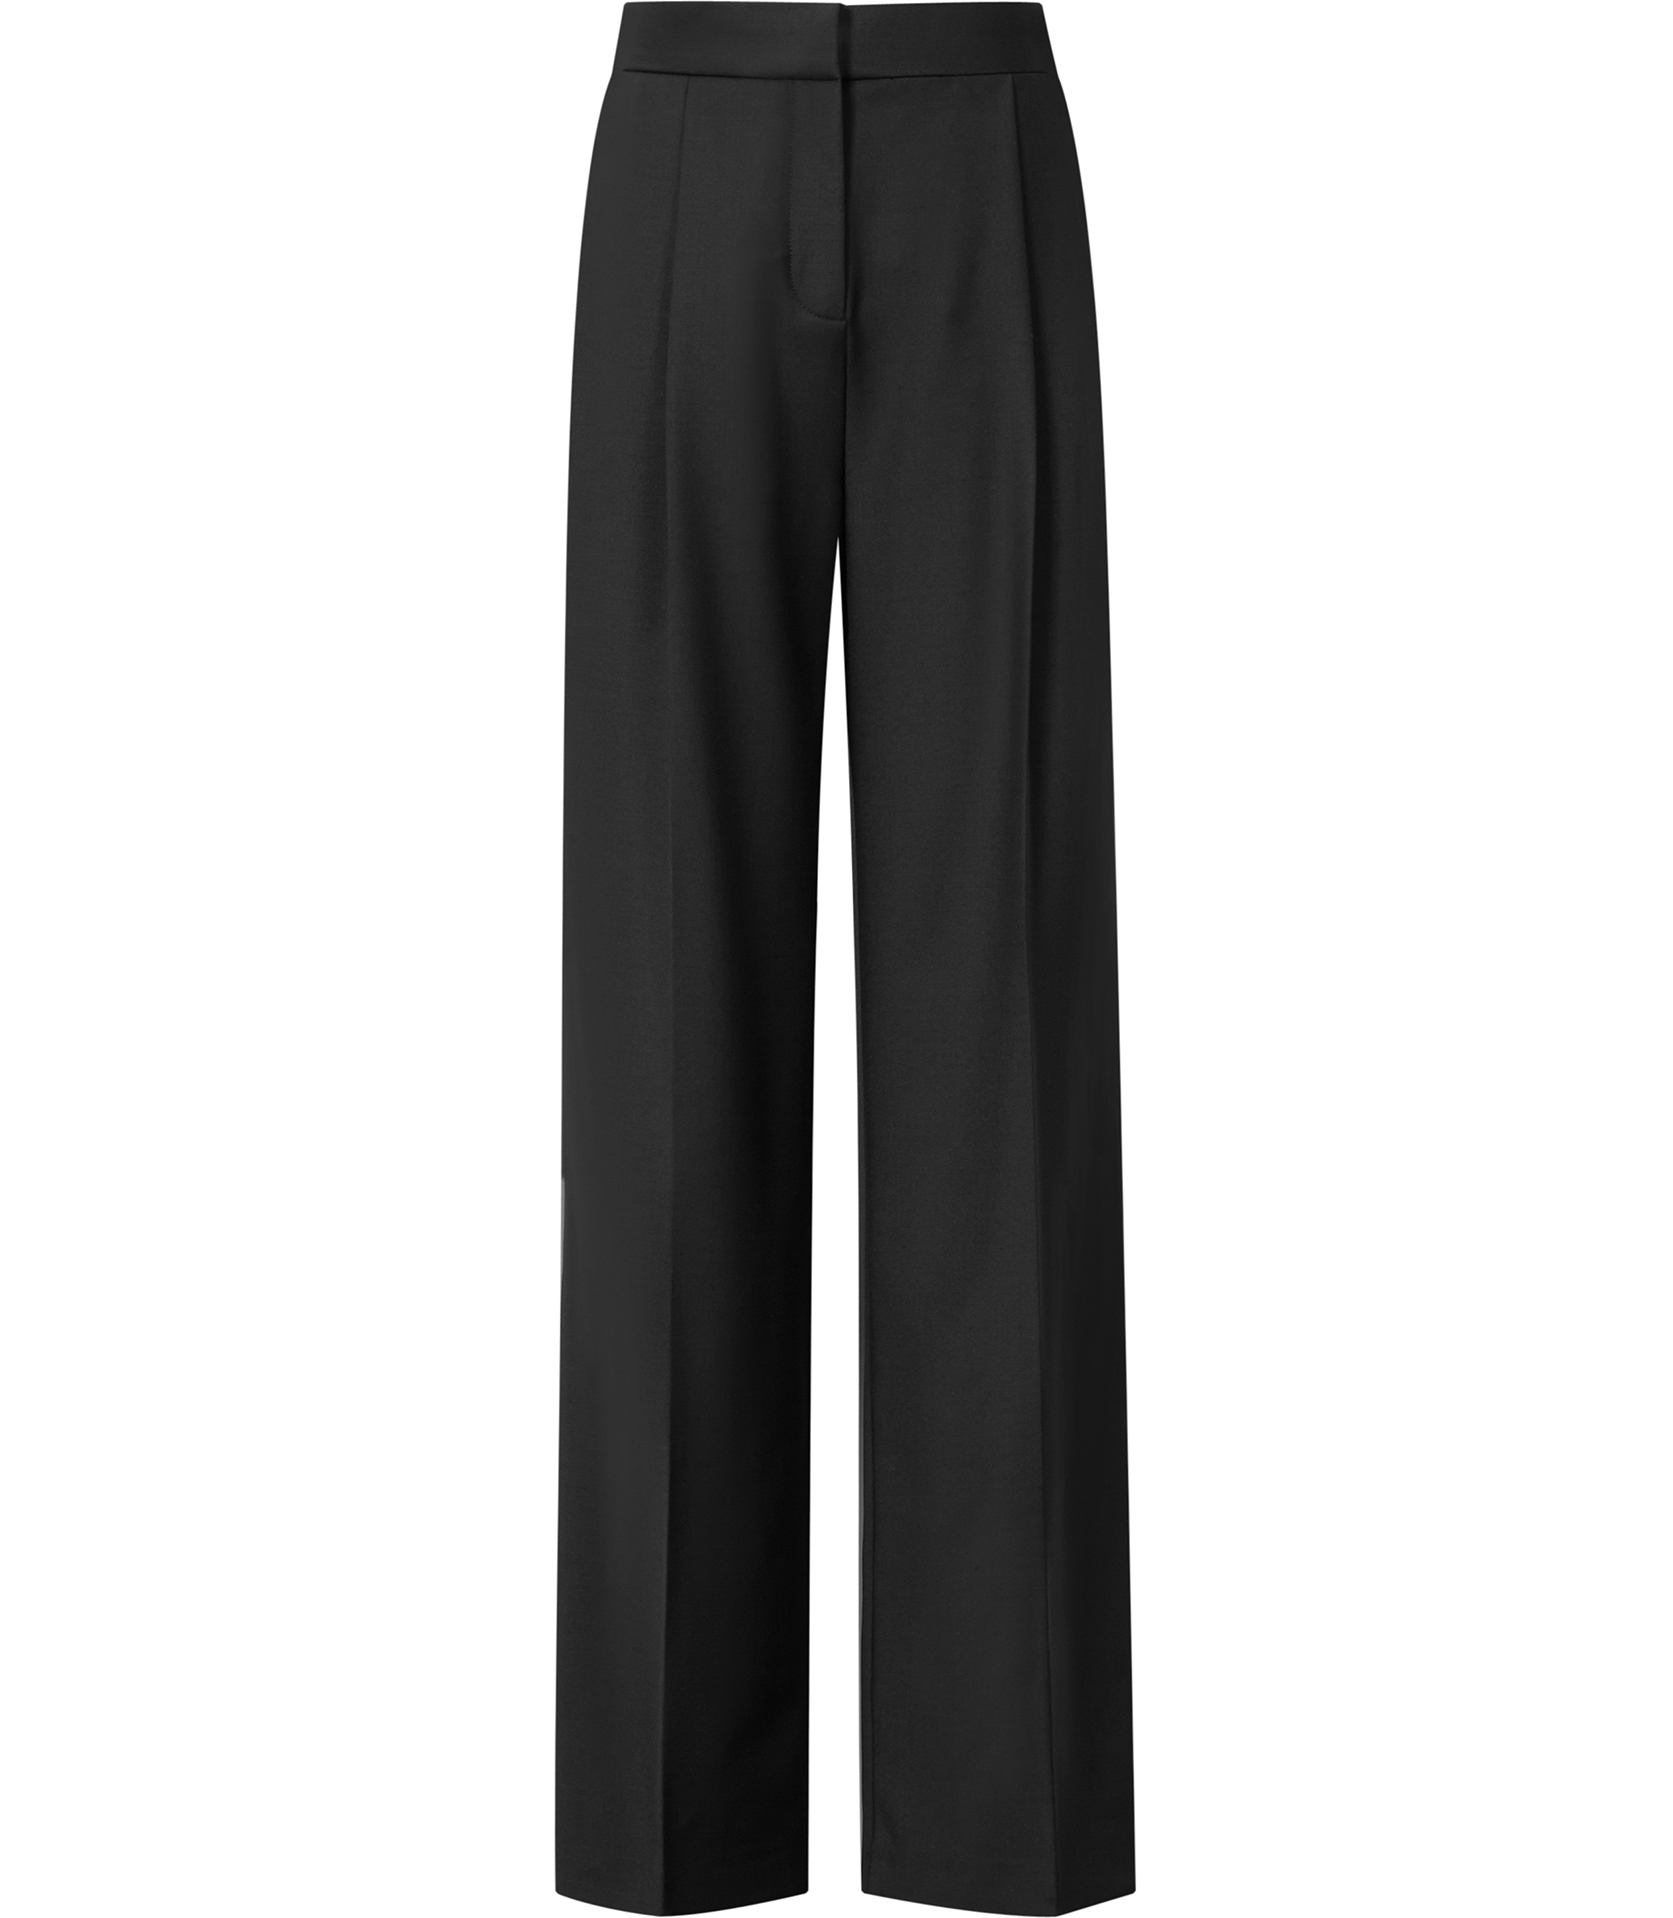 Reiss Francois High-Waisted Wide Leg Trousers in Black | Lyst